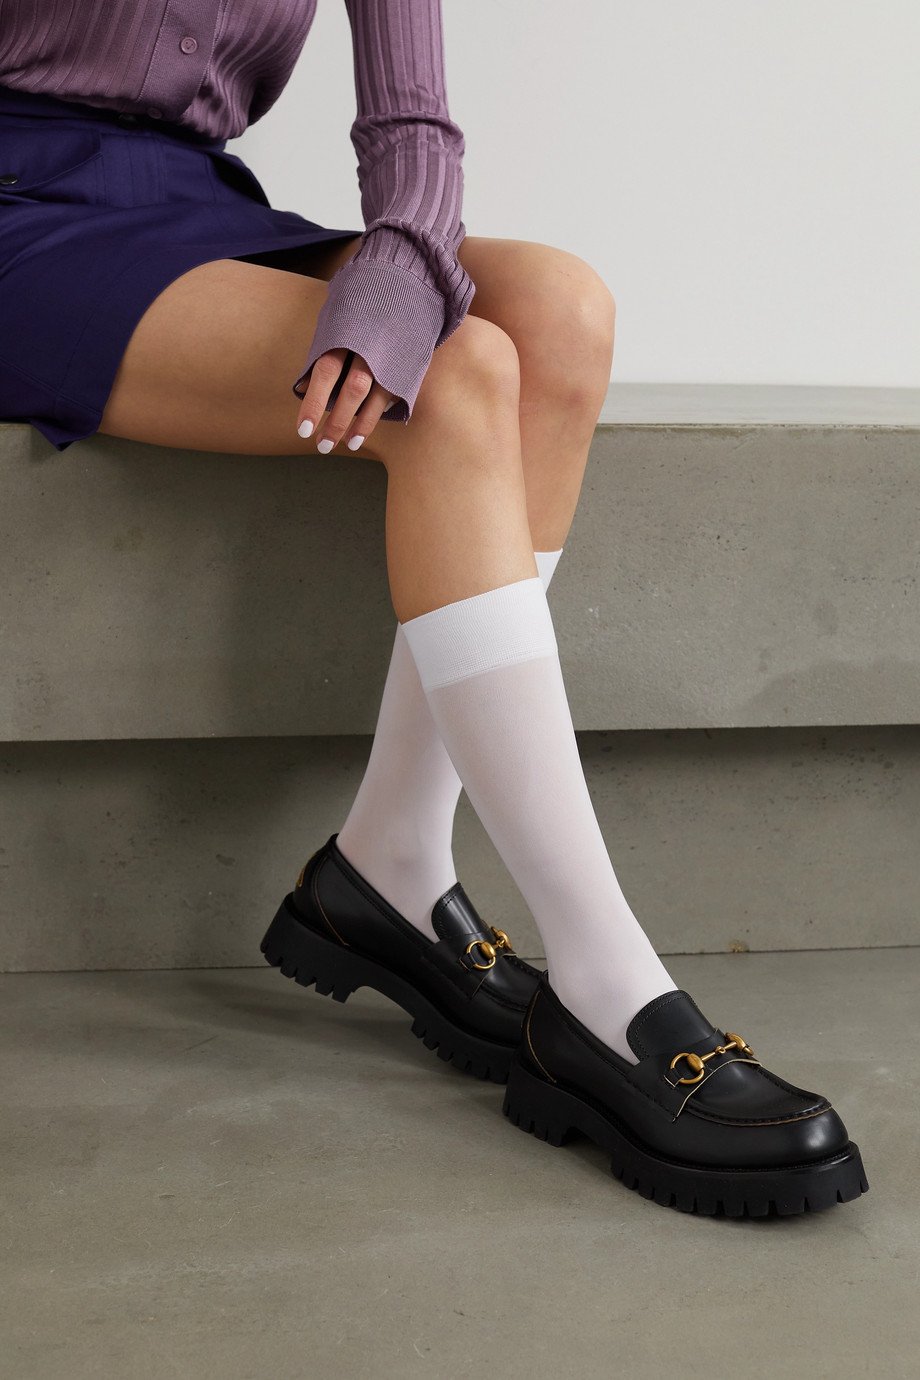 Dries Van Noten 20 denier socks